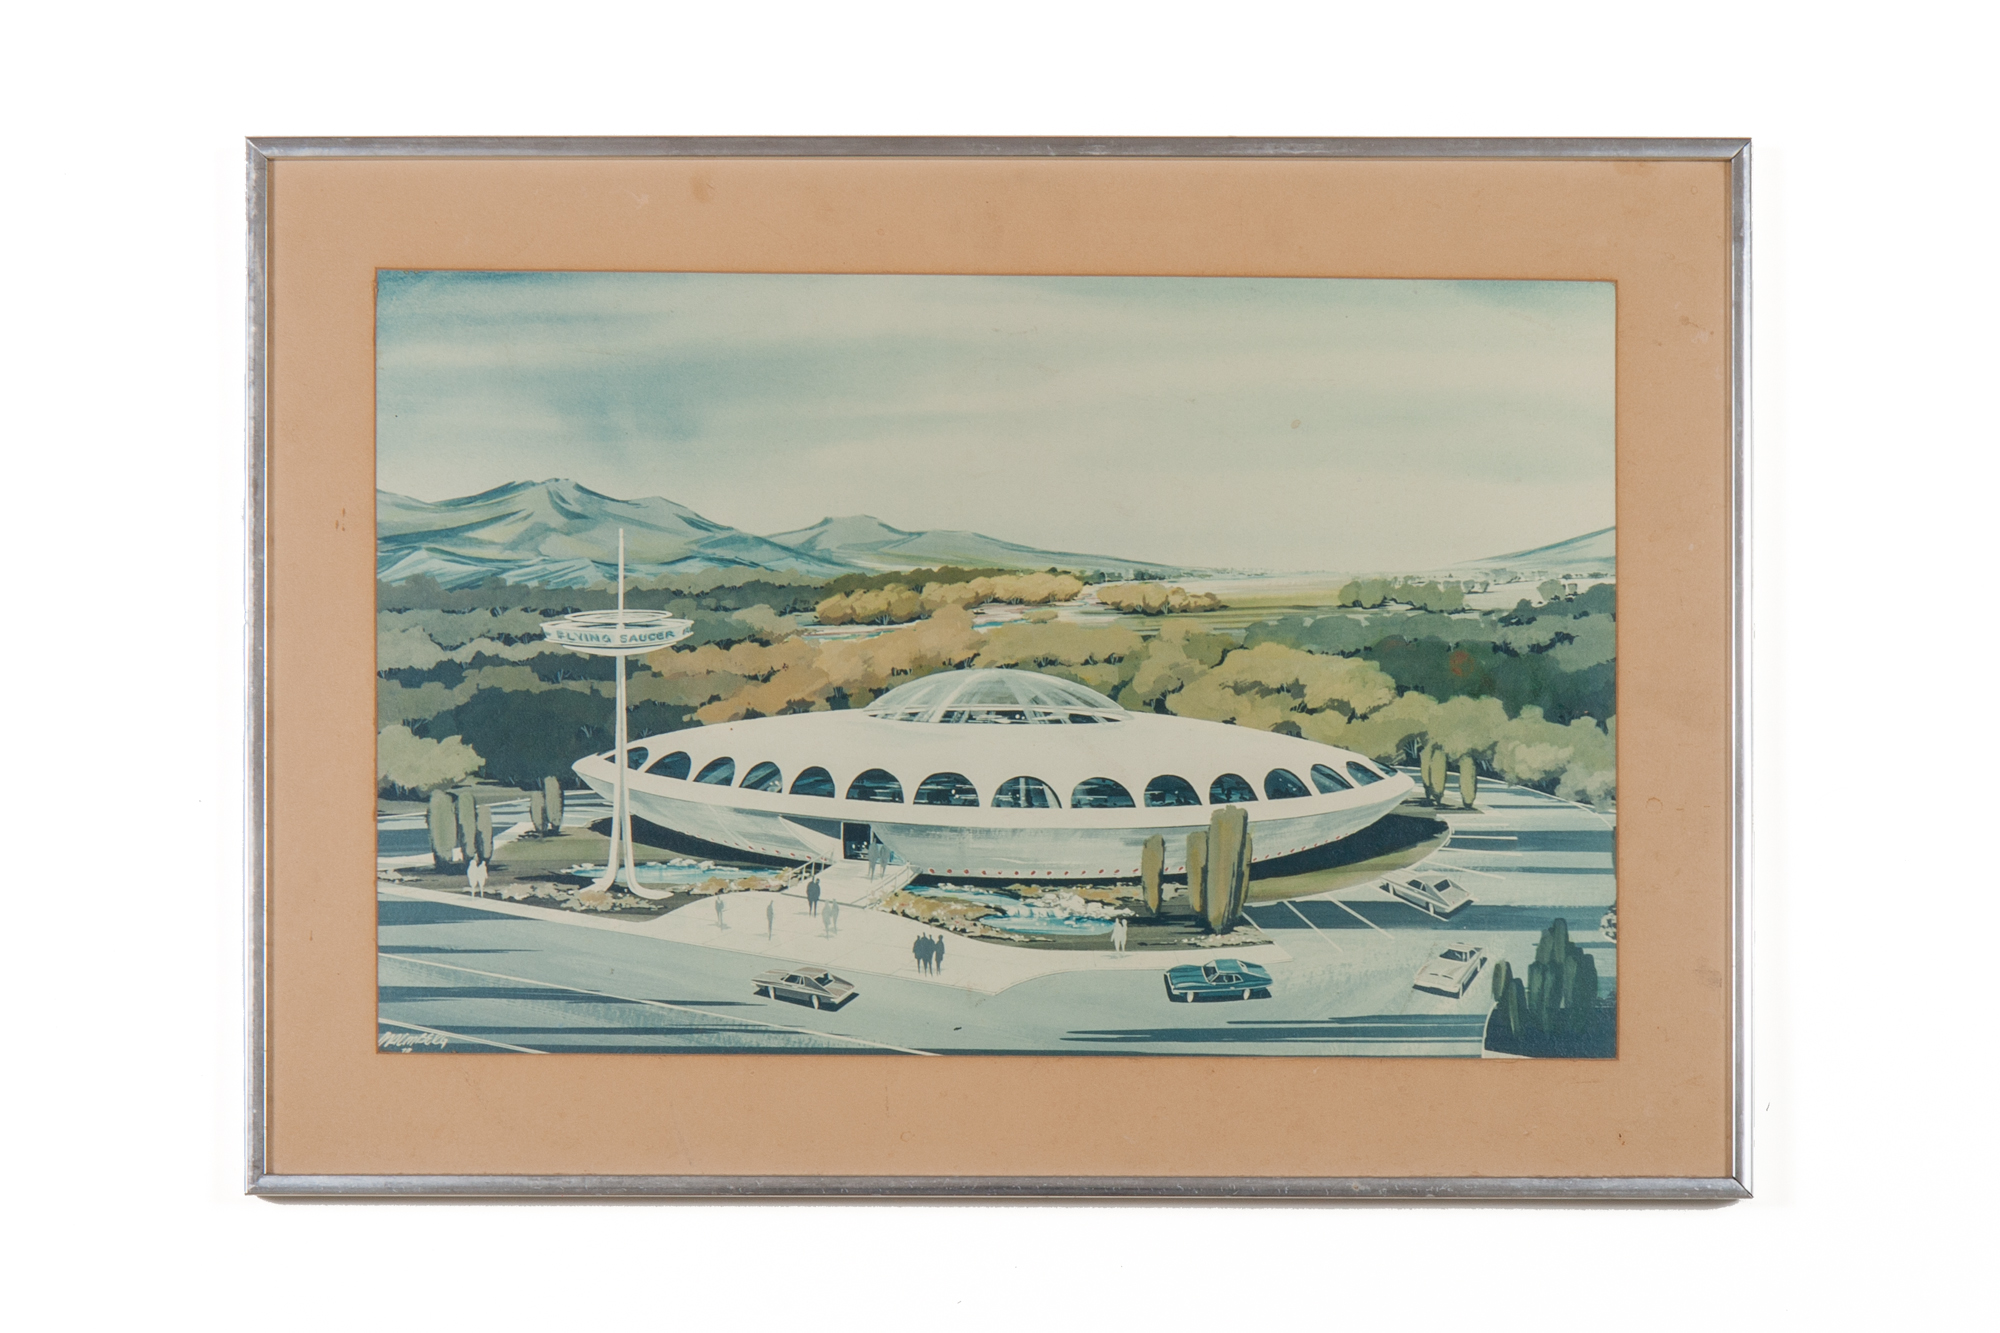 Architectural Concept Painting: Flying Saucer Restaurant by MacMberg (1970) watercolor